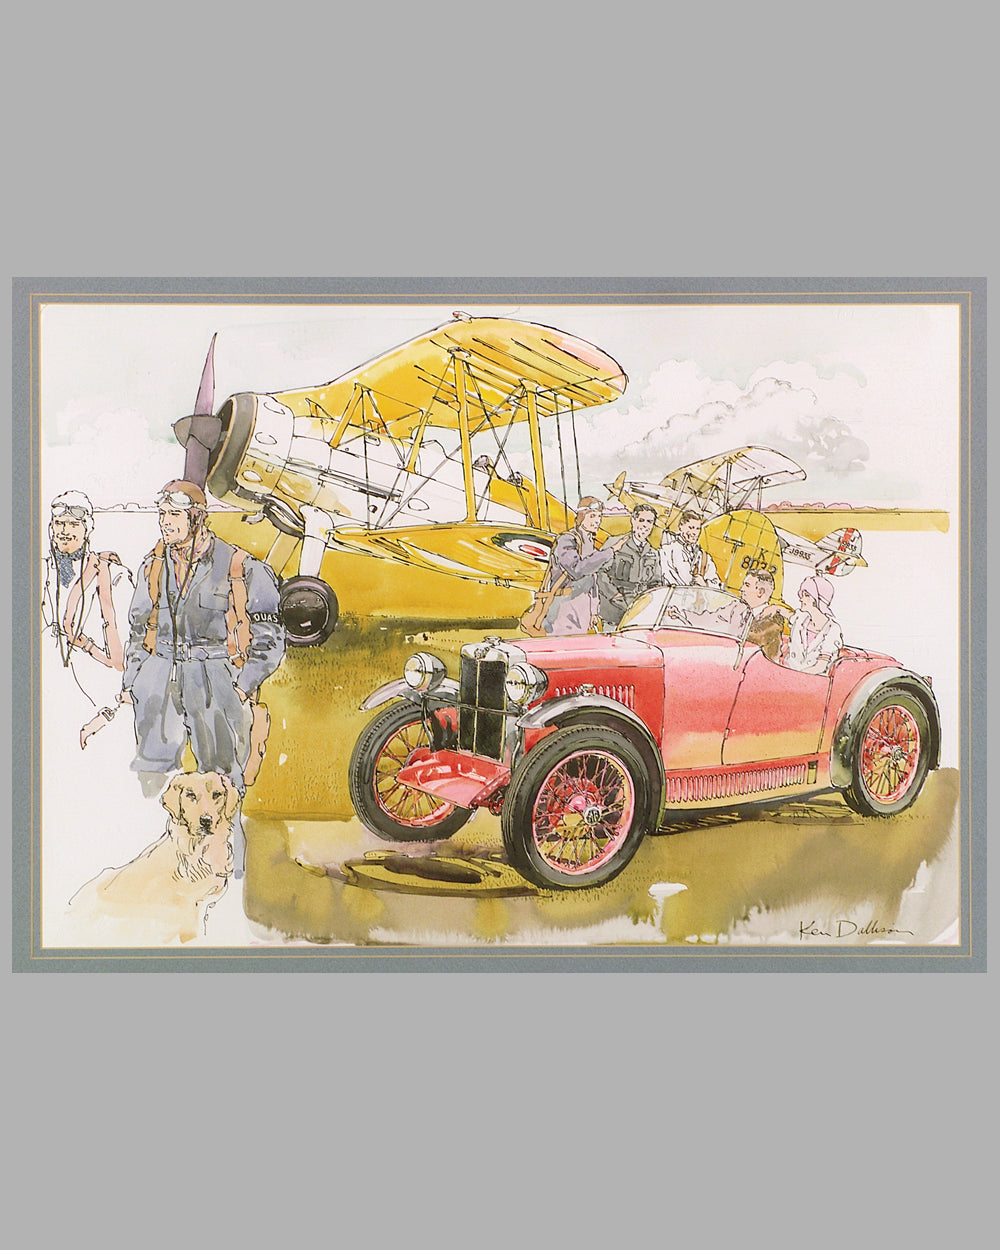 MG Midget at the Airfield painting by Ken Dallison